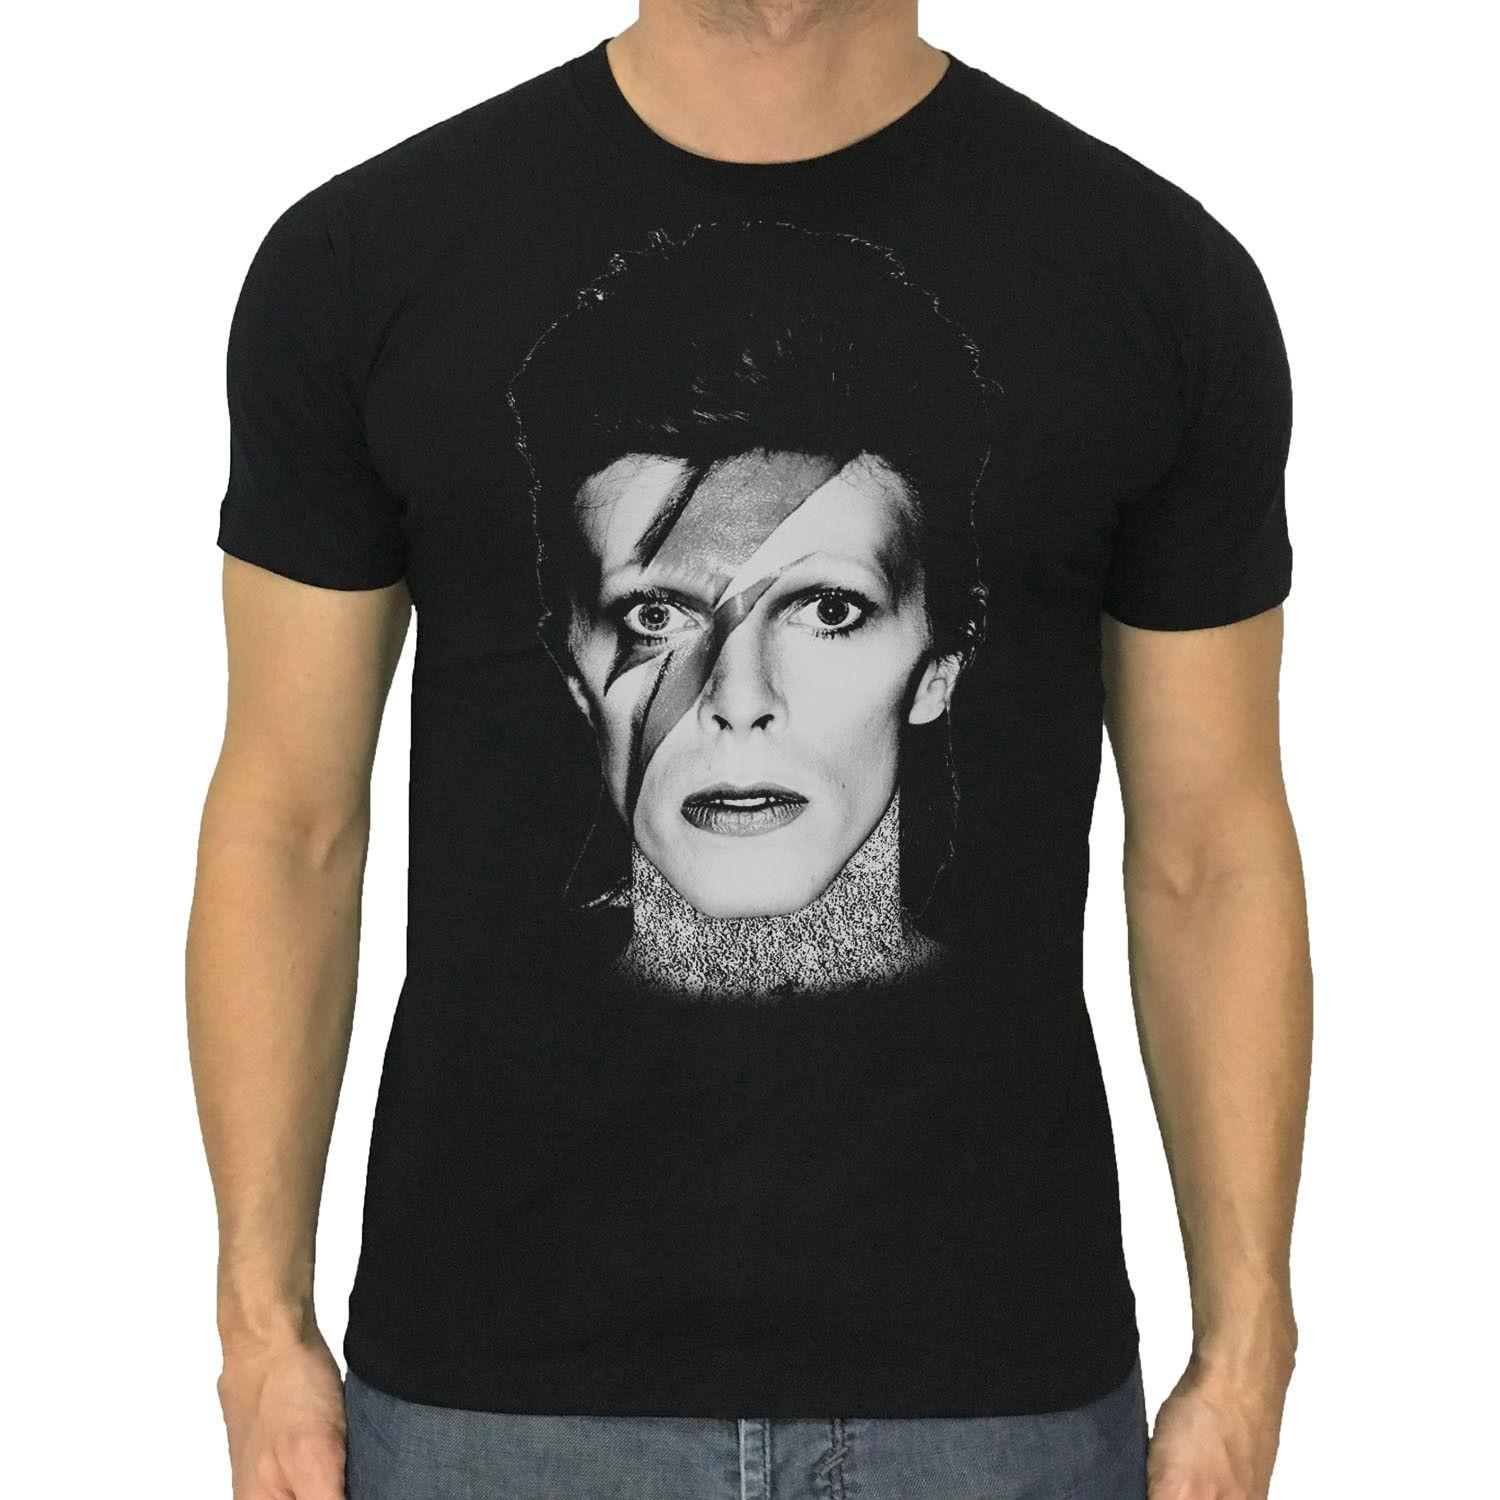 0403cccaf362 David Bowie T Shirt Aladdin Sane New Men Black Or Dark Grey Shirt S To  2XLFunny Unisex Casual Tshirt Top Gag T Shirts T Shirts With Prints From ...